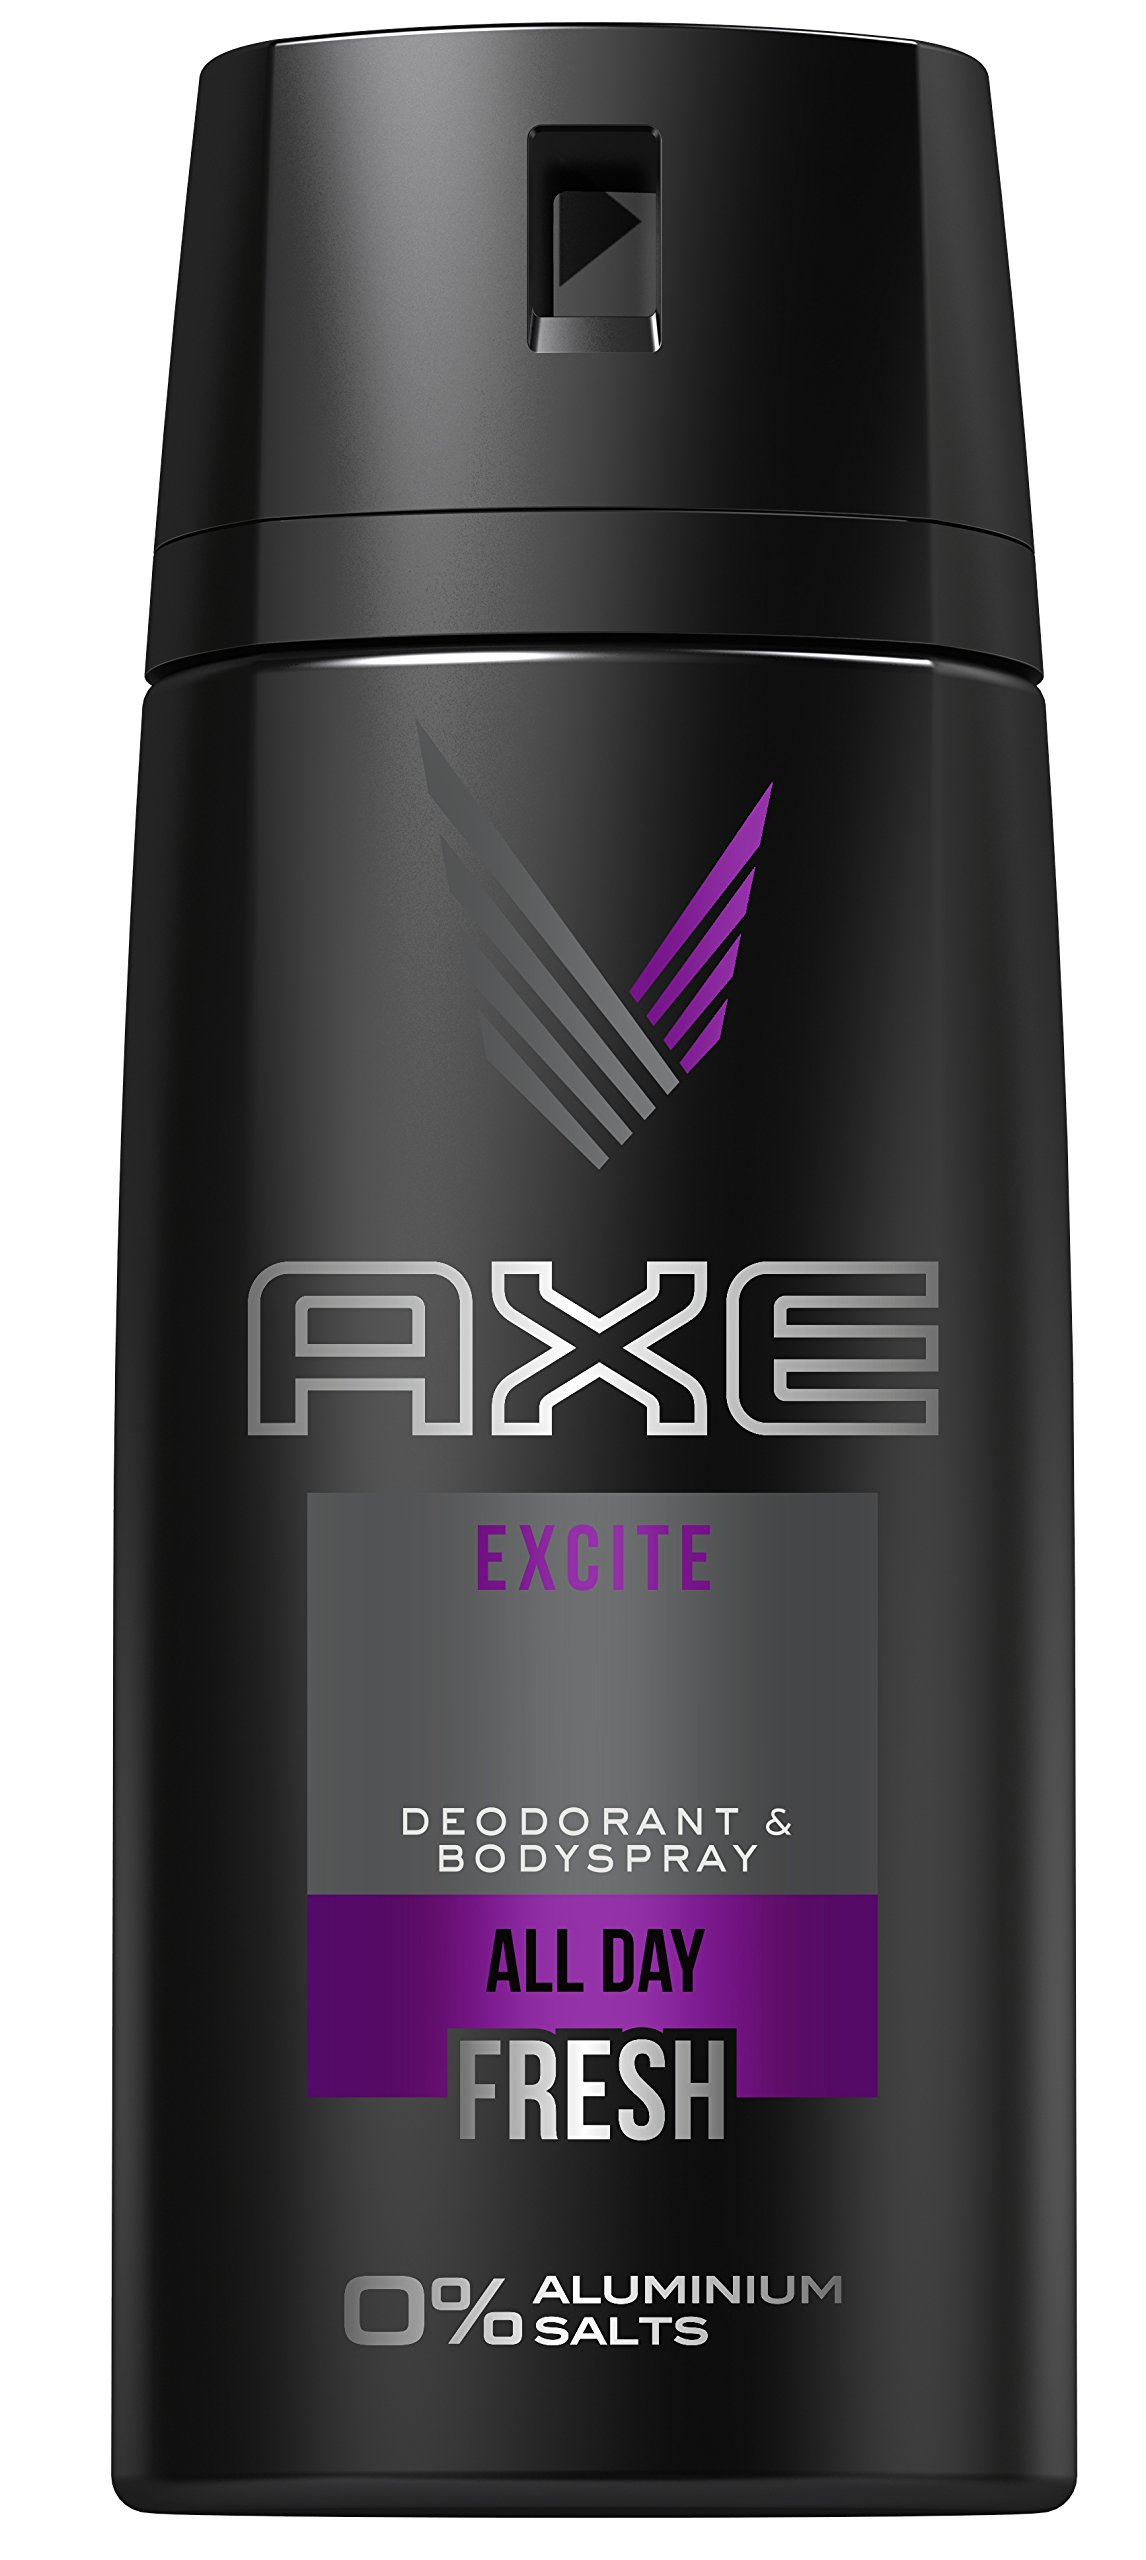 AXE-Desodorante-Bodyspray-Refreshed